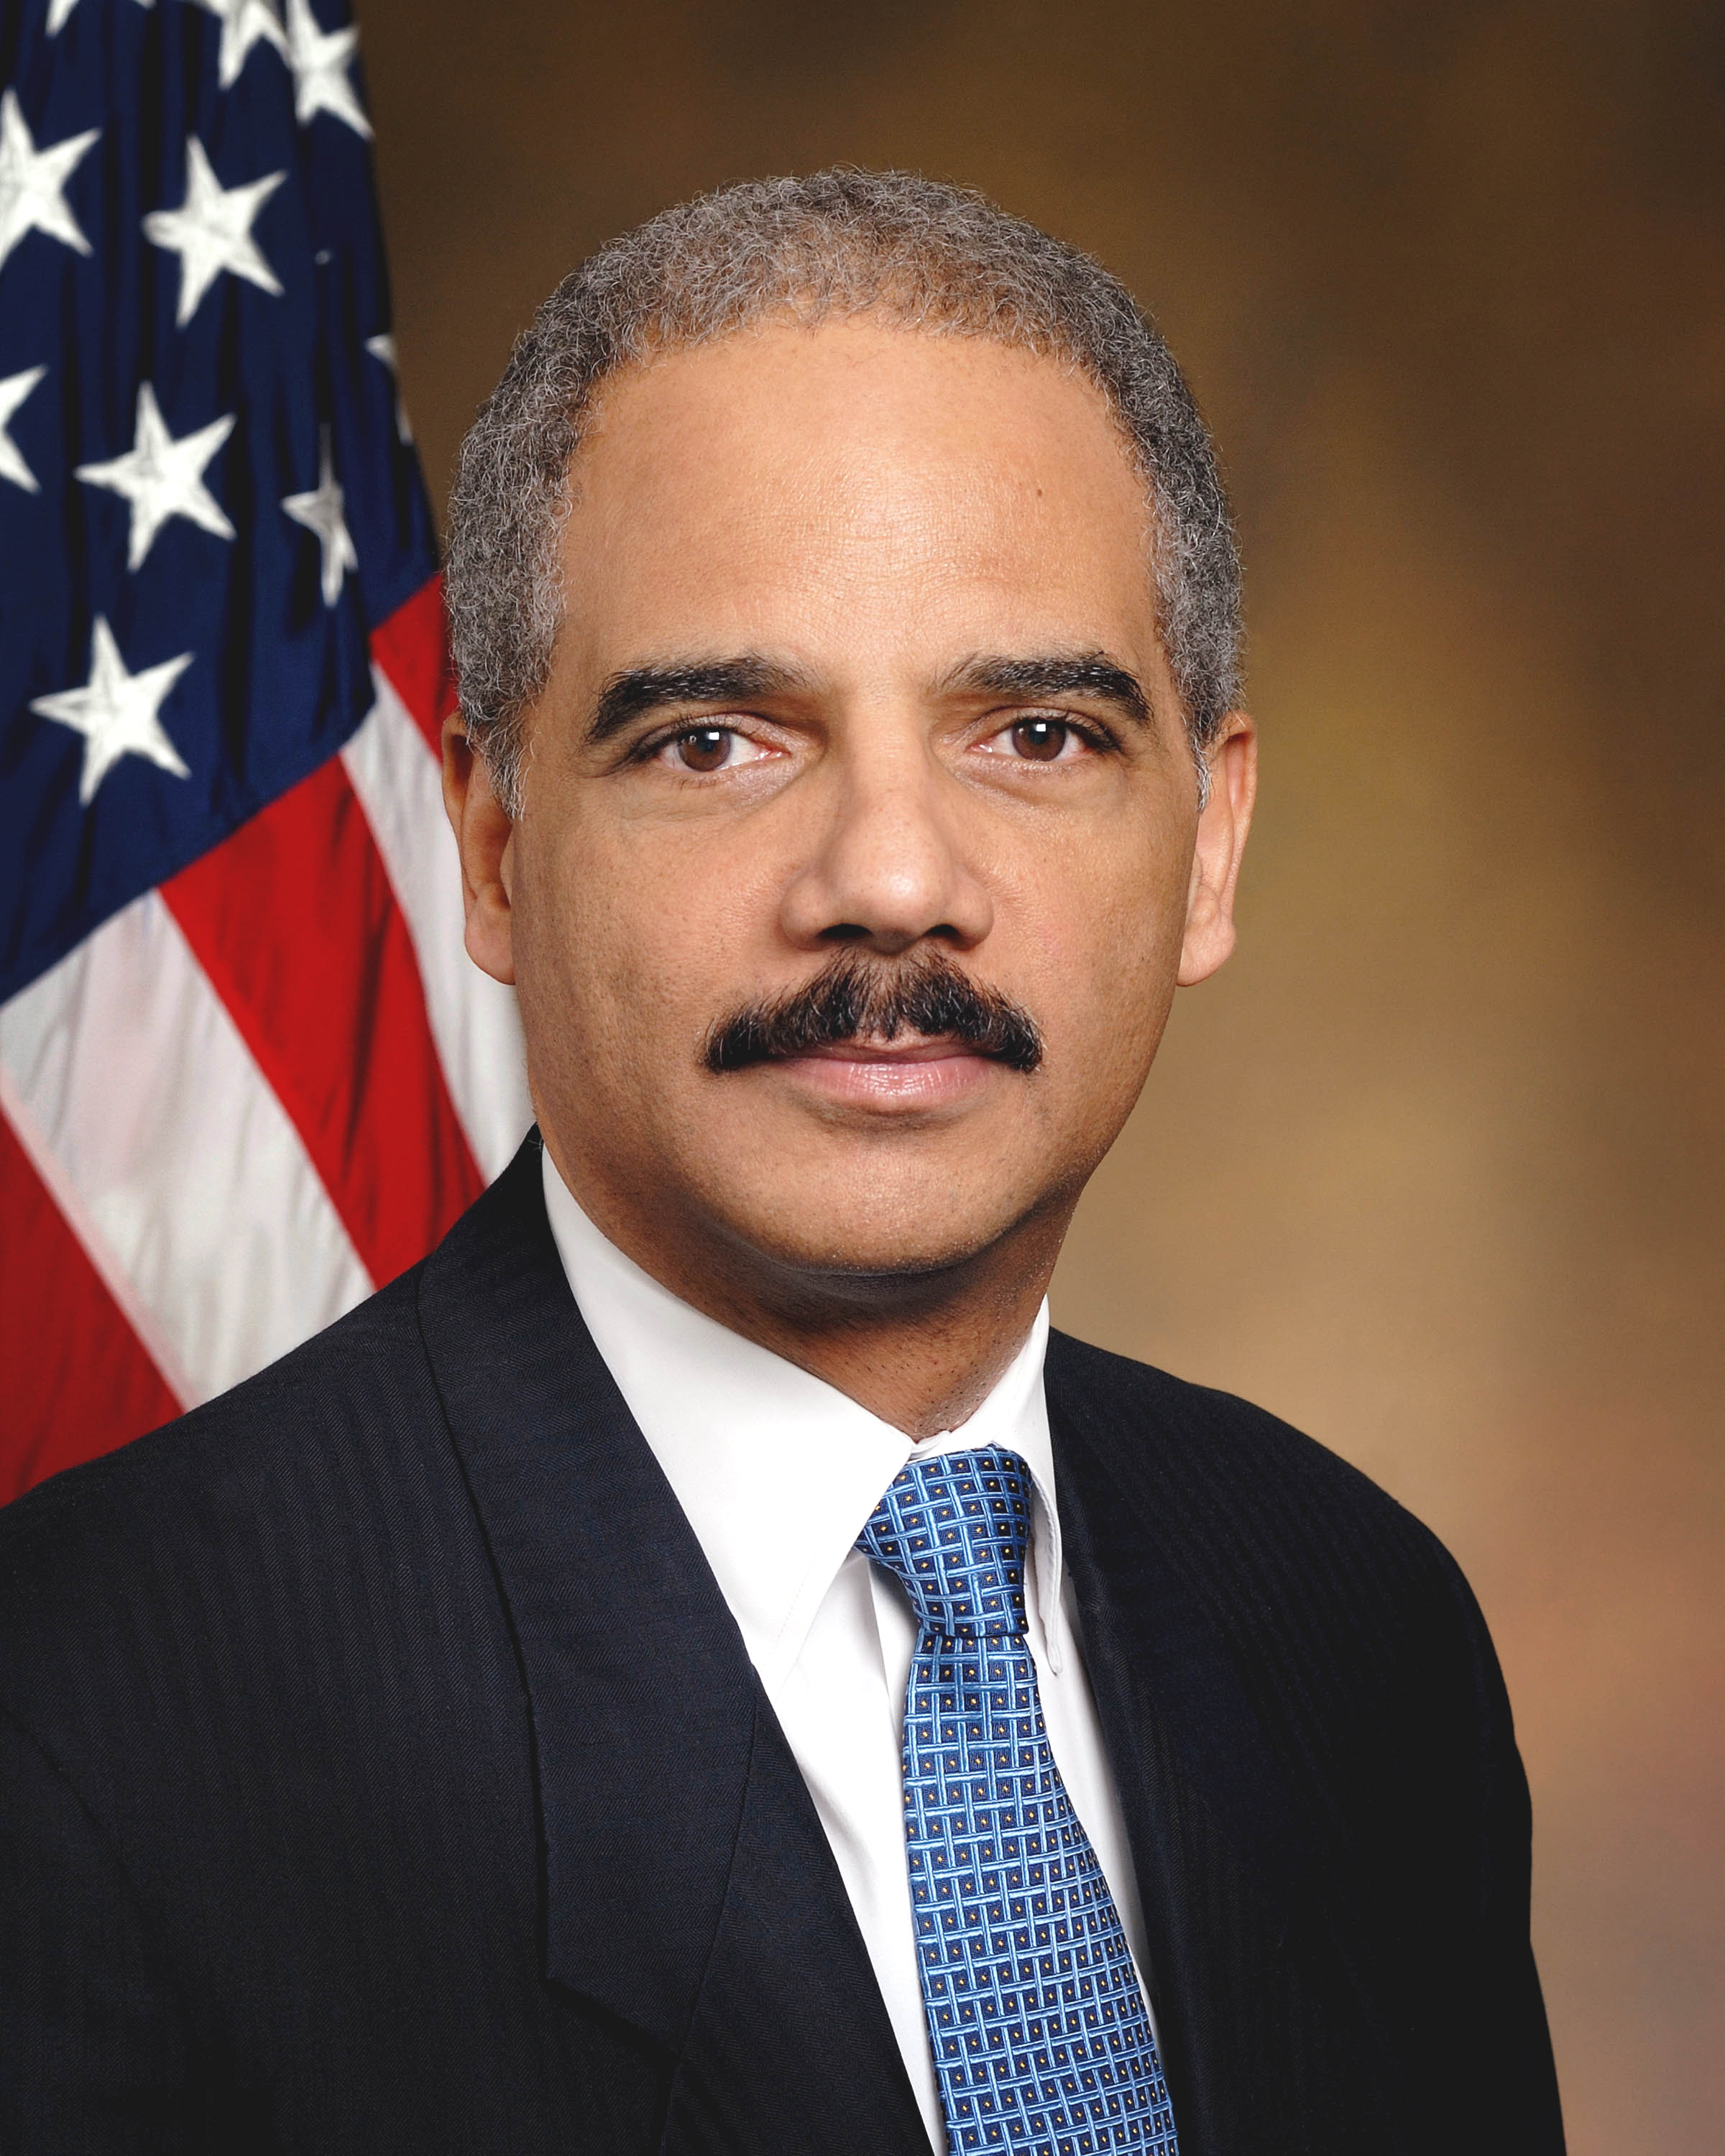 File:ERIC HOLDER official portrait.jpg - Wikimedia Commons